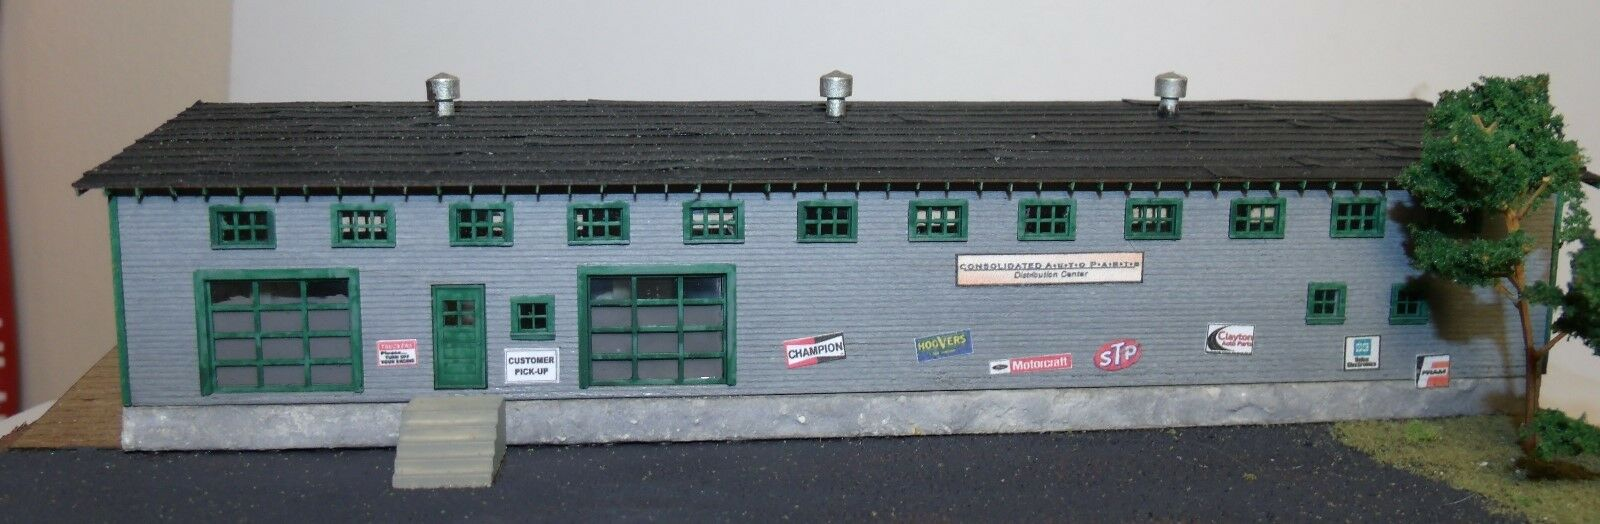 N Scale - Motrak Models - 13003 - Structure, Commercial - Commercial Structures - Consolidated Auto Parts Co.